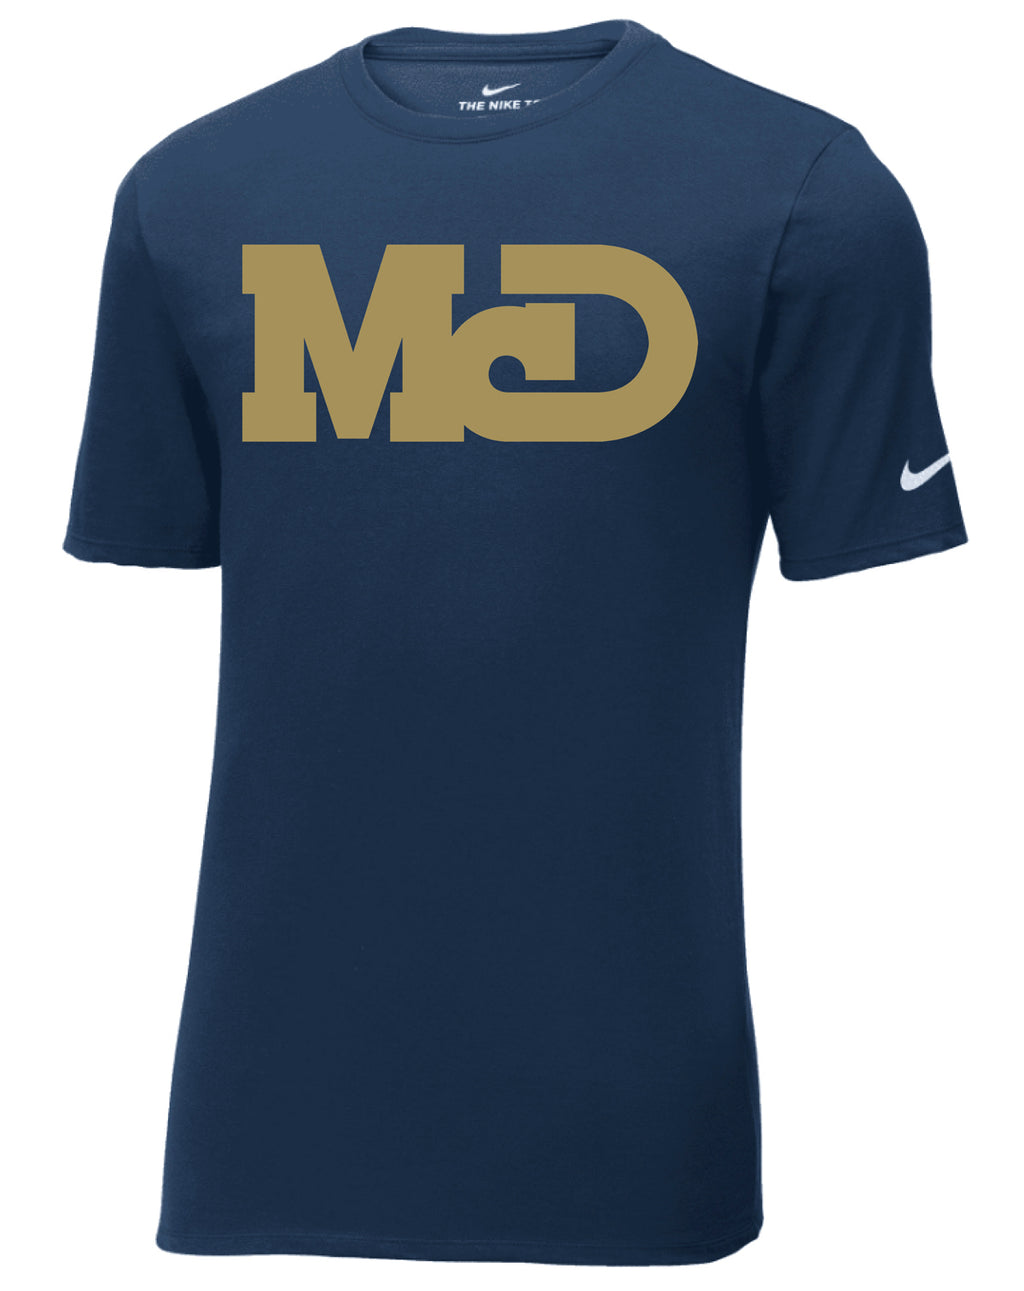 MCD NAVY LOGO SHORT SLEEVE TSHIRT